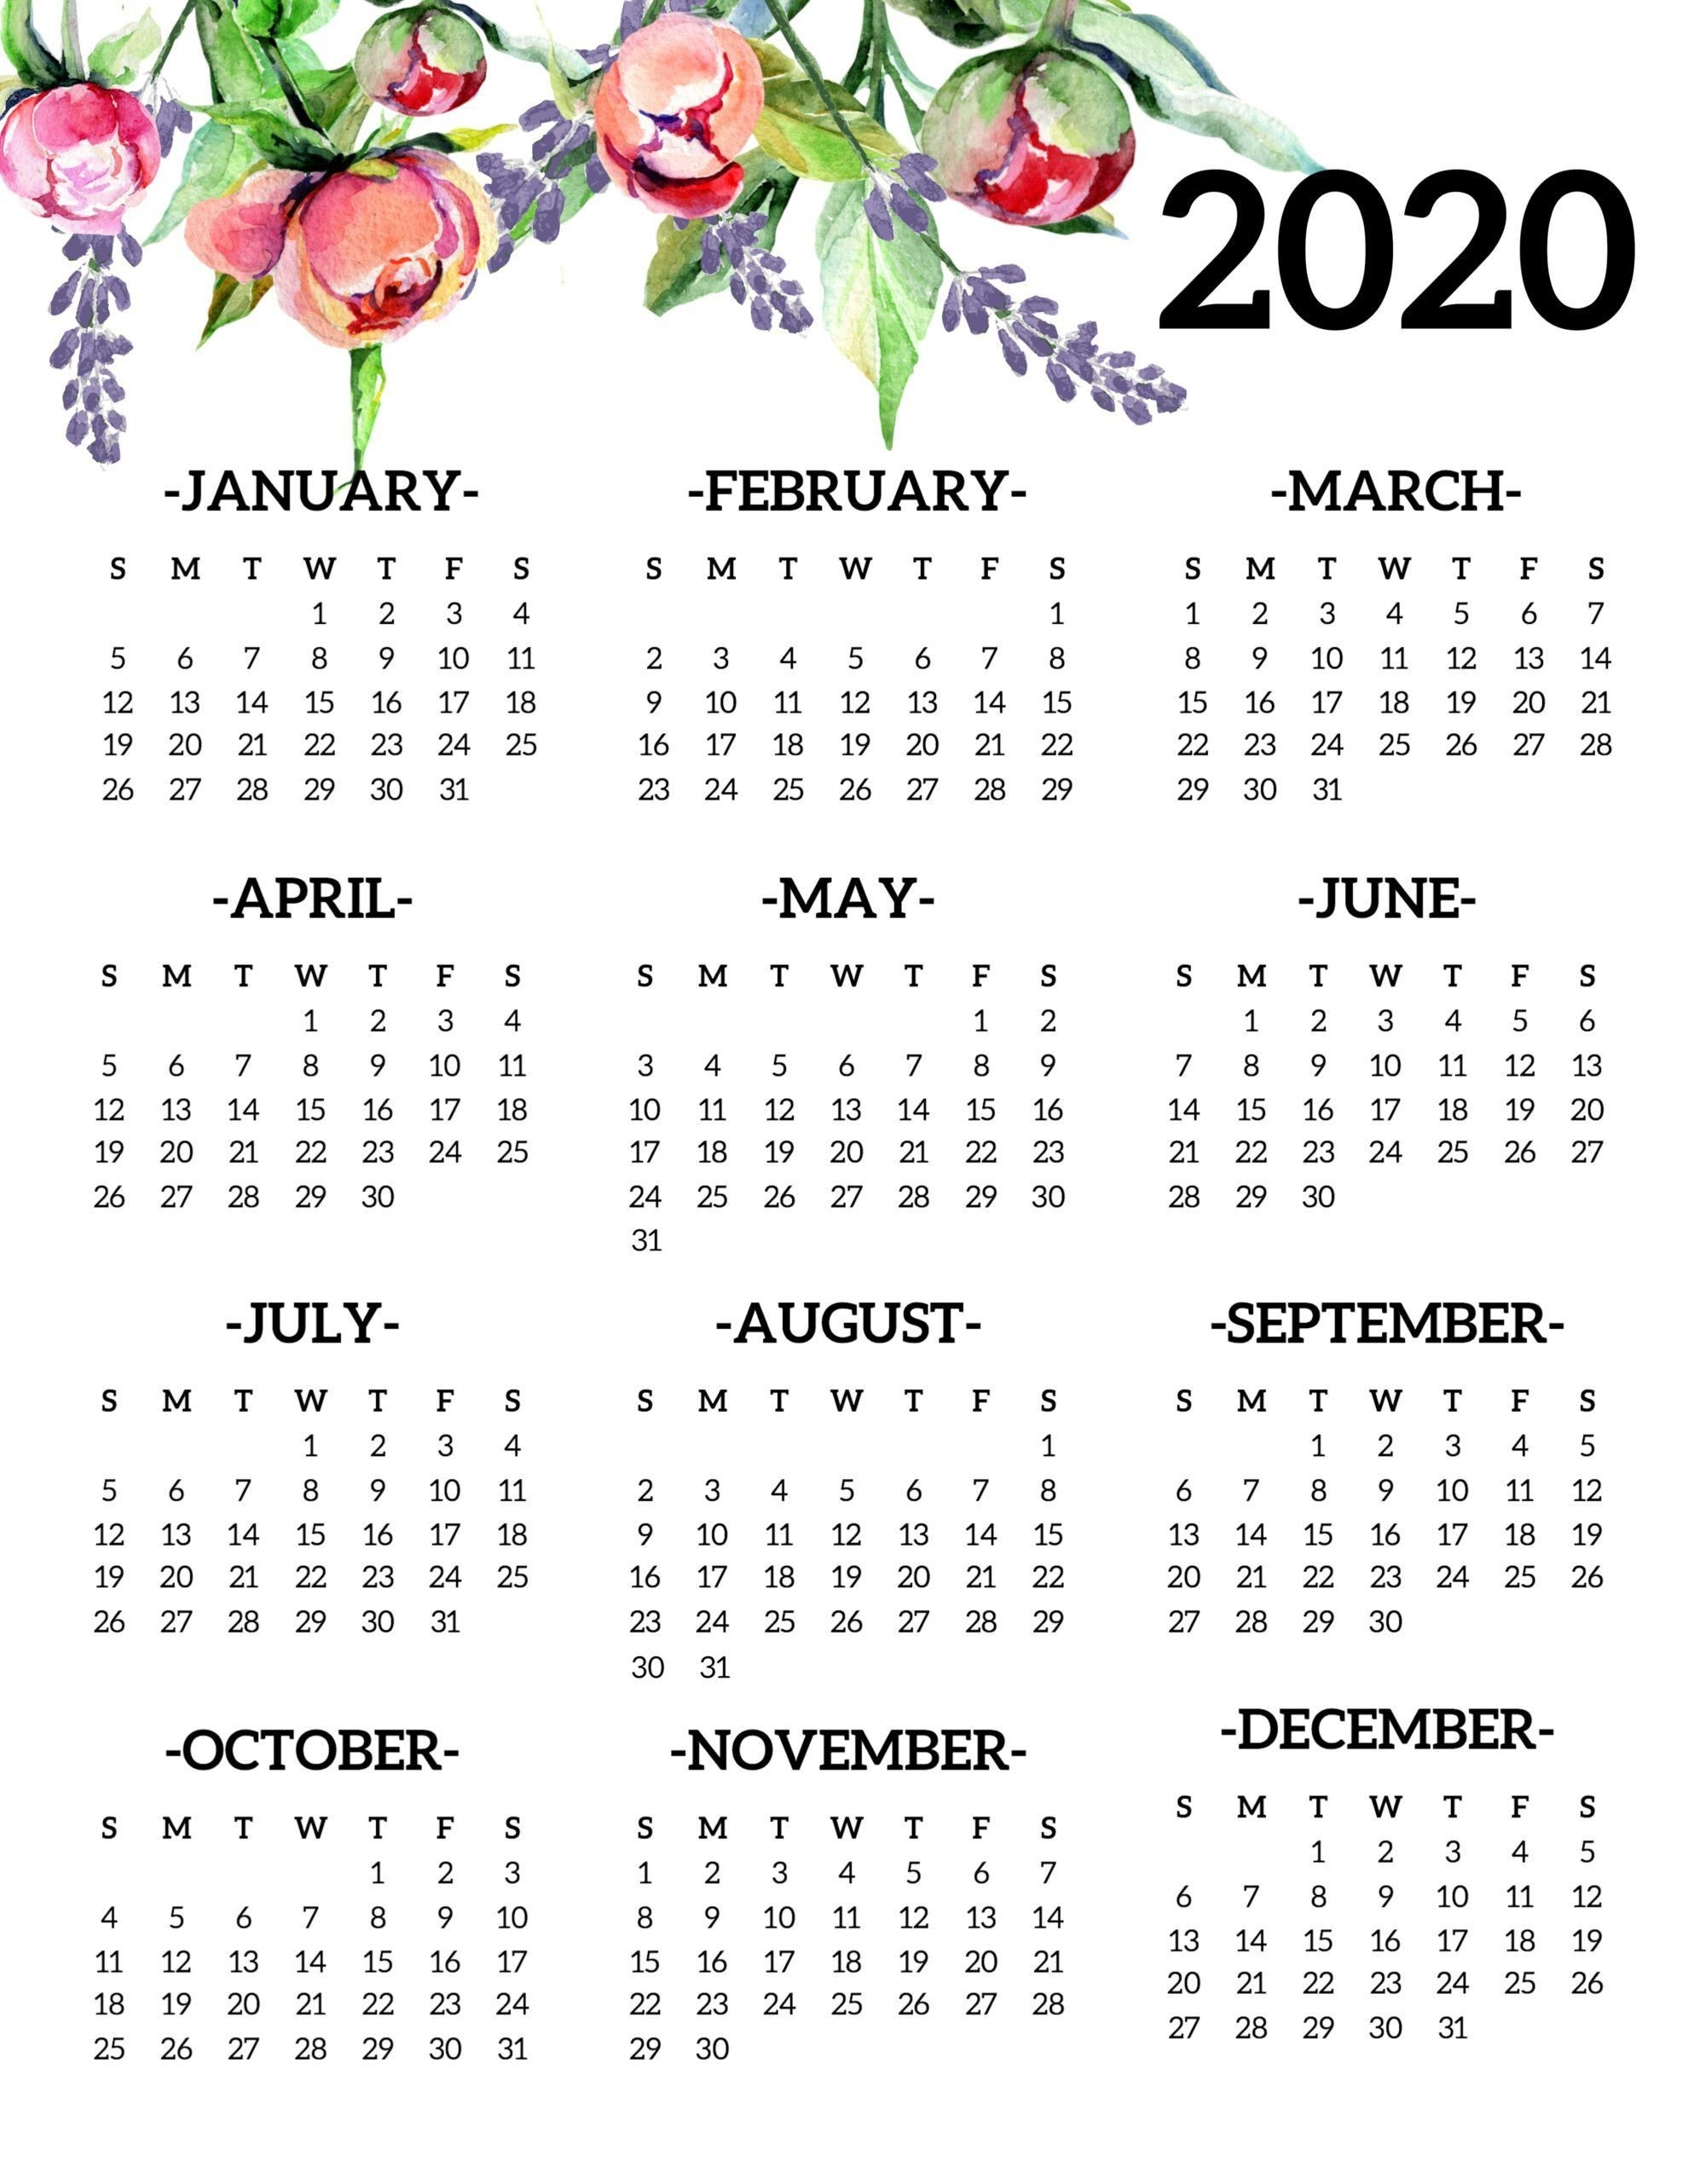 Printable Yearly Calendars 2020 | Printable Yearly Calendar  One Page Yearly 2020 Calendar Free Printable